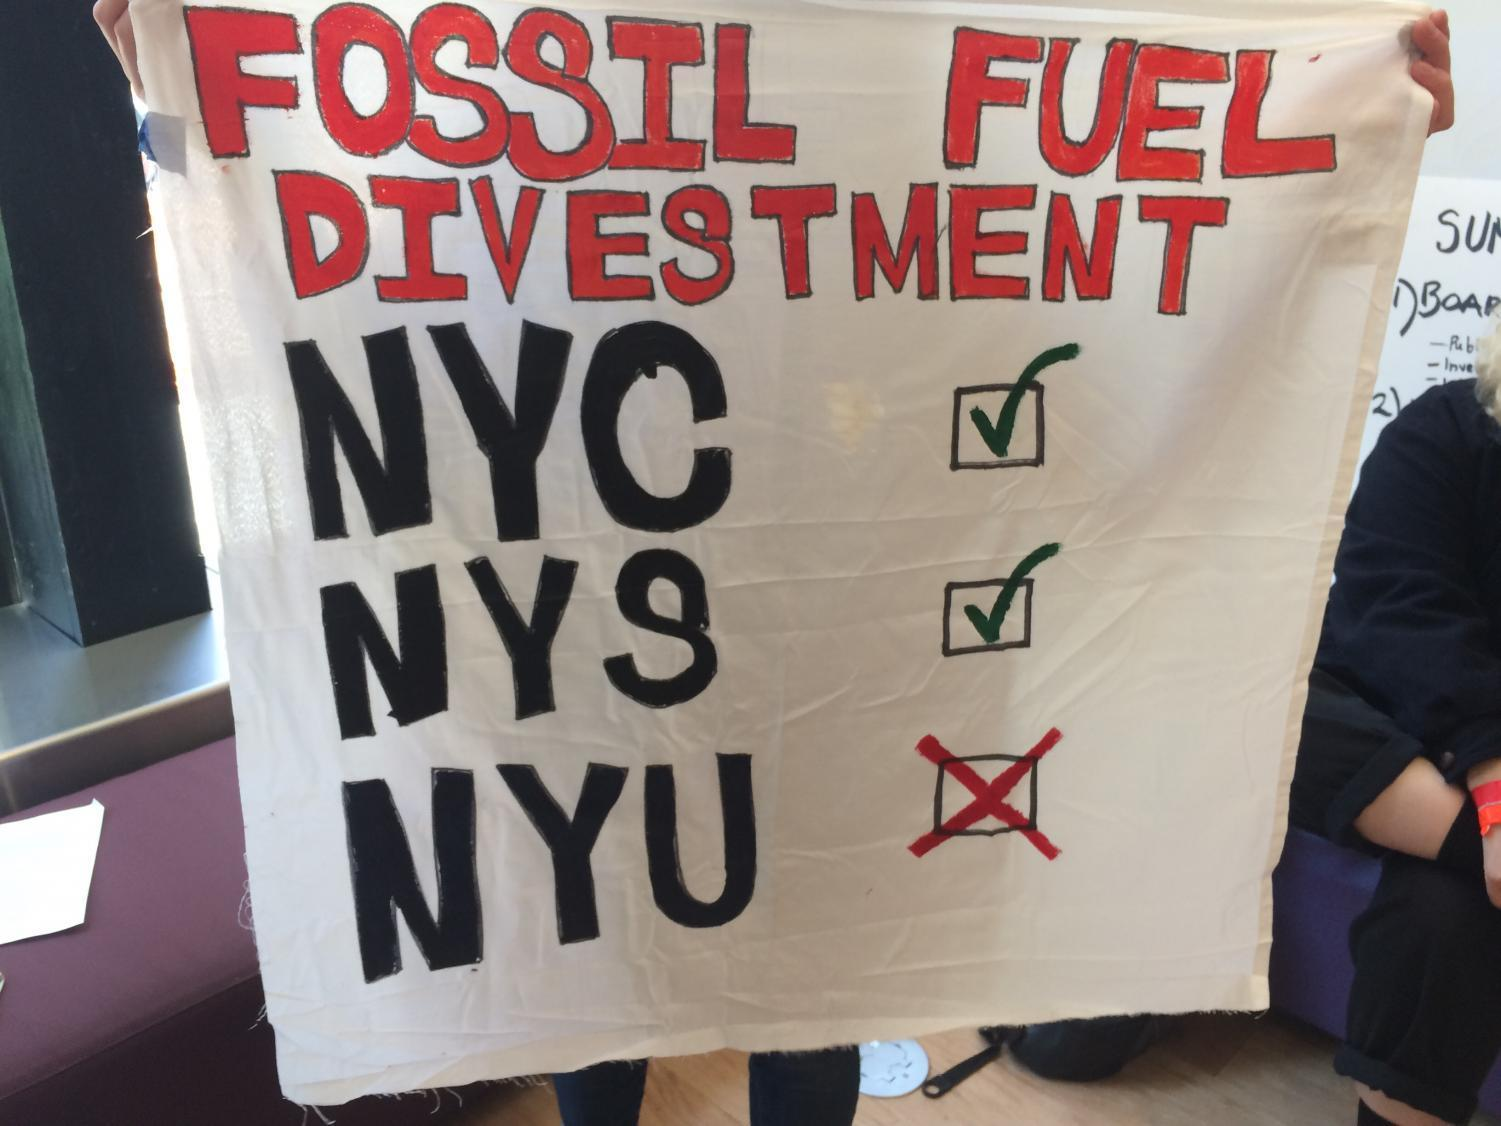 Demonstrators displayed posters advocating for fossil fuel divestment and improved student representation.